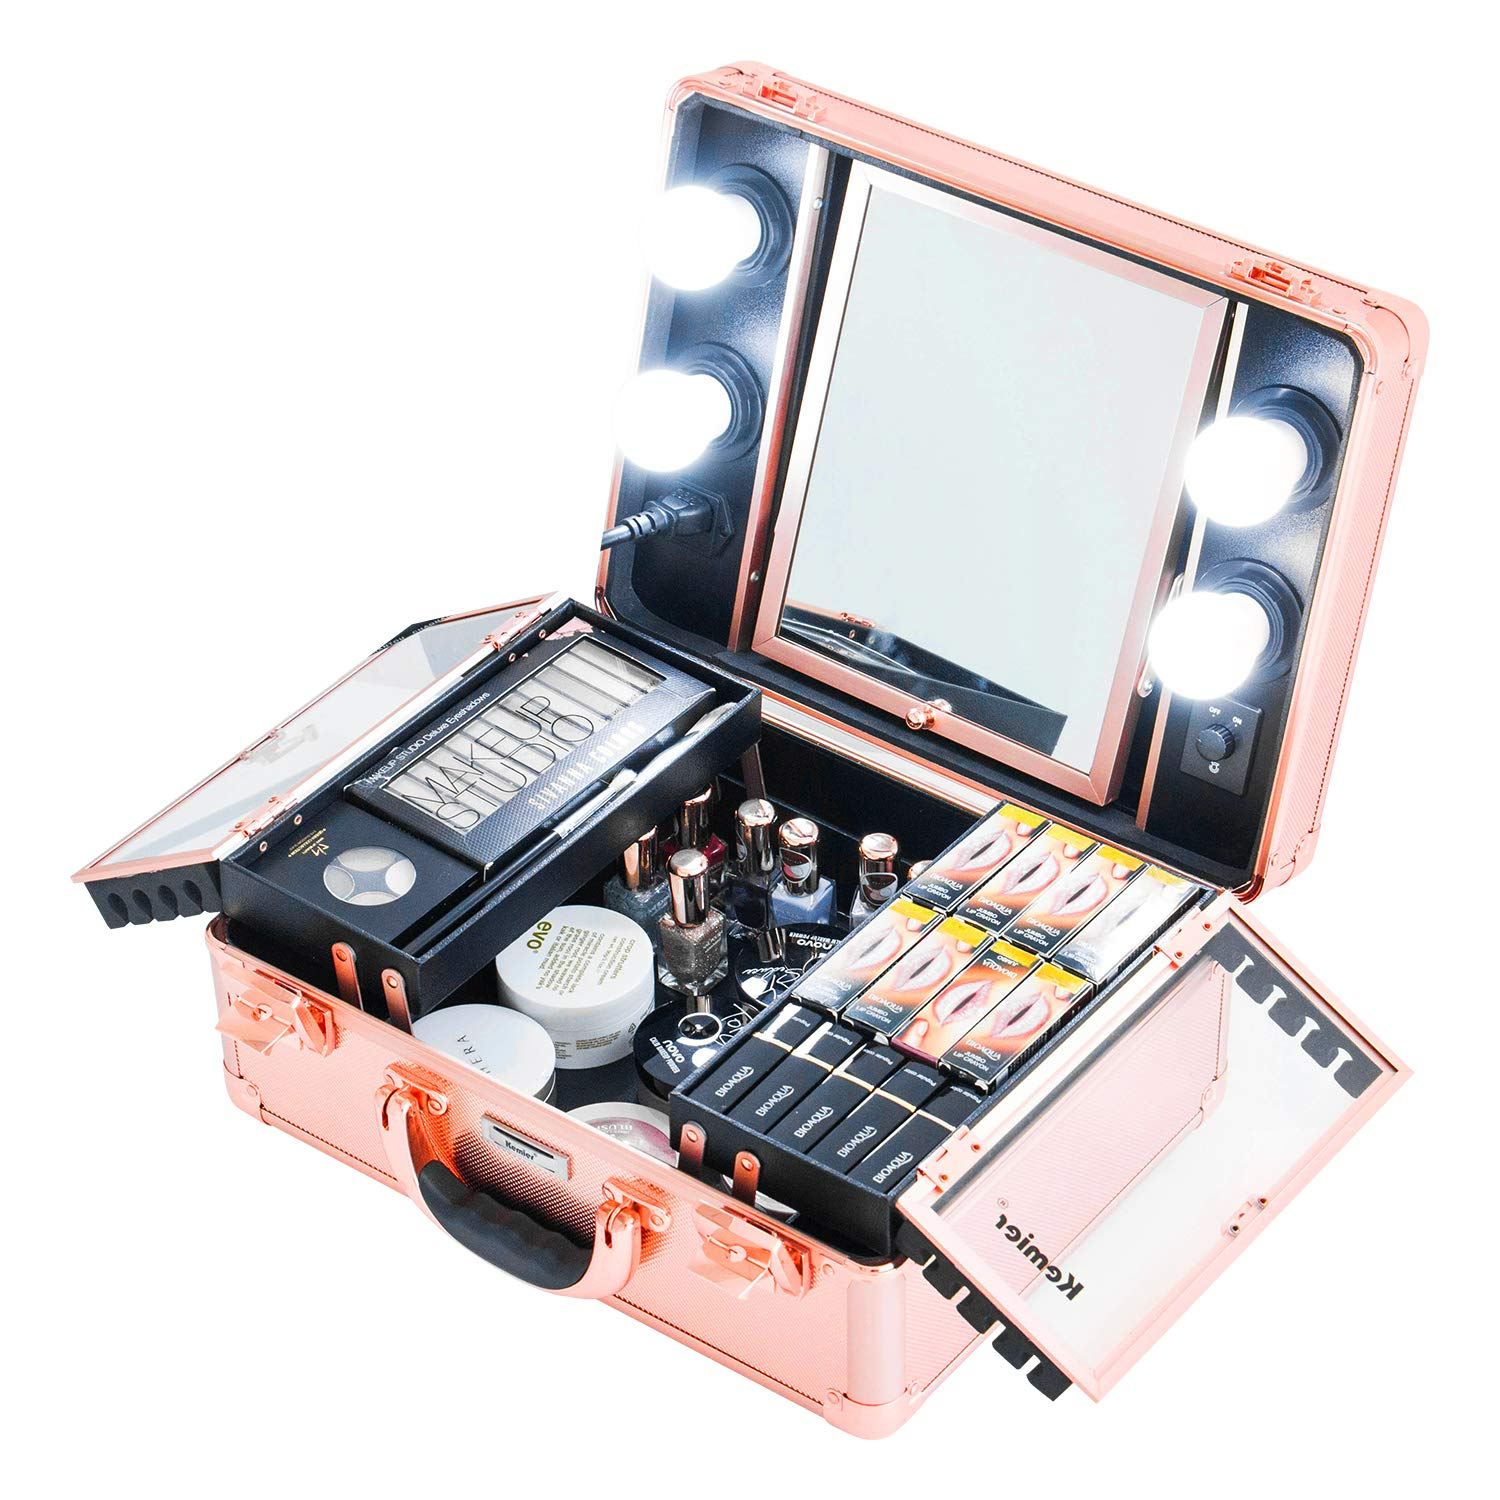 Kemier Makeup Train Case - Cosmetic Organizer Box Makeup Case with Lights and Mirror/Makeup Case with Customized Dividers/Large Makeup Artist Organizer Kit (Rose Gold) by Kemier